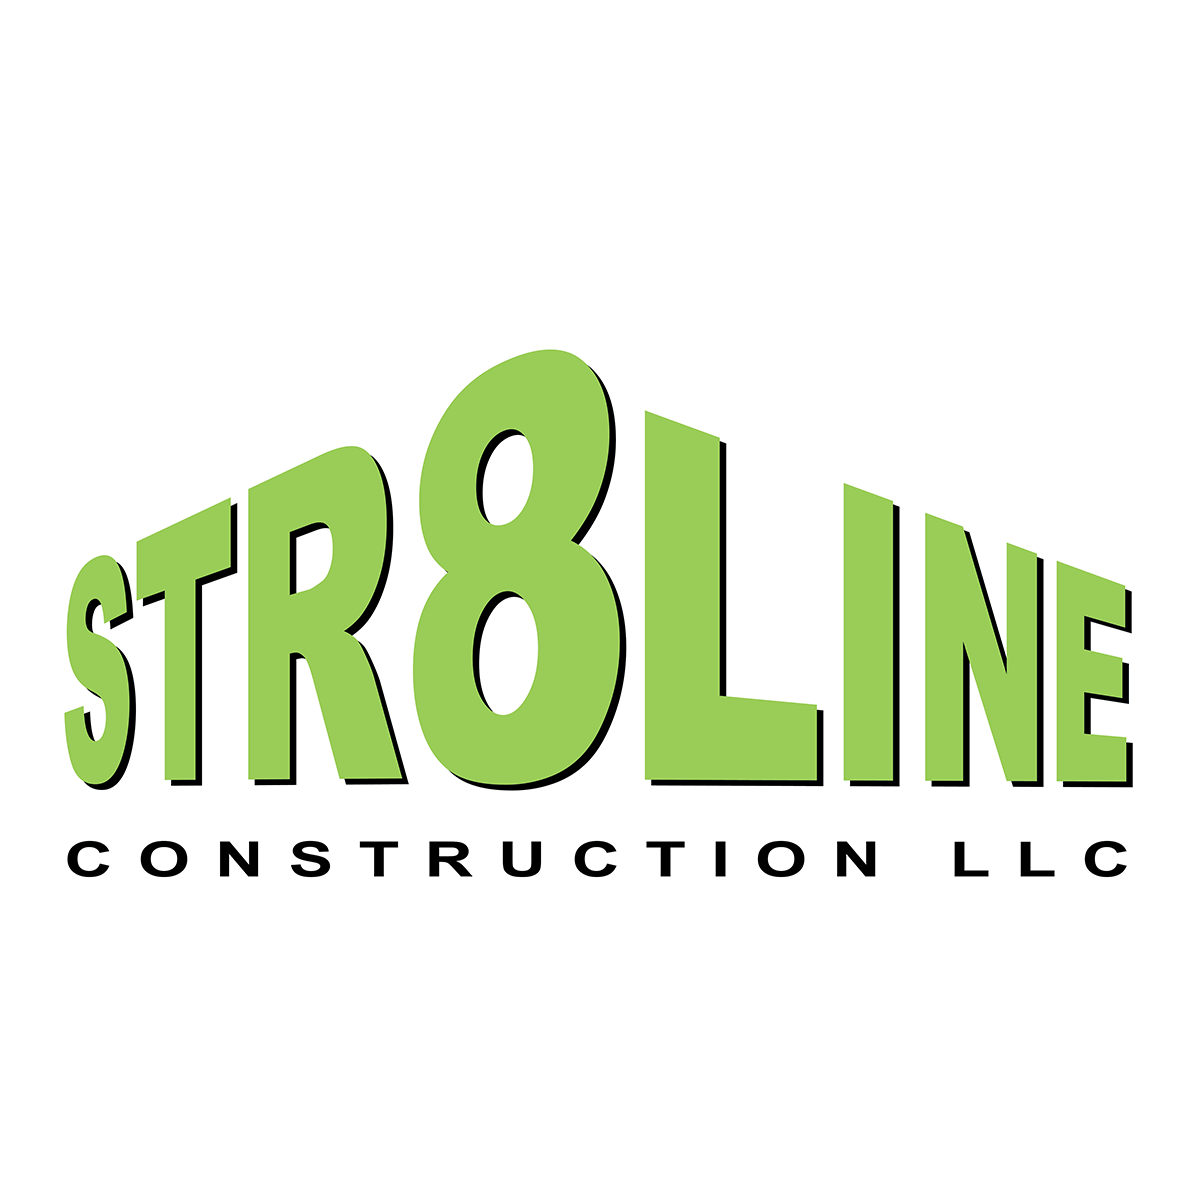 Str8line Construction LLC   Str8line Construction LLC specializes in roofing. They asked me to design a logo and vehicle graphics to get their branding started. I used a combination of Illustrator and Photoshop to create their logo and other branding materials.